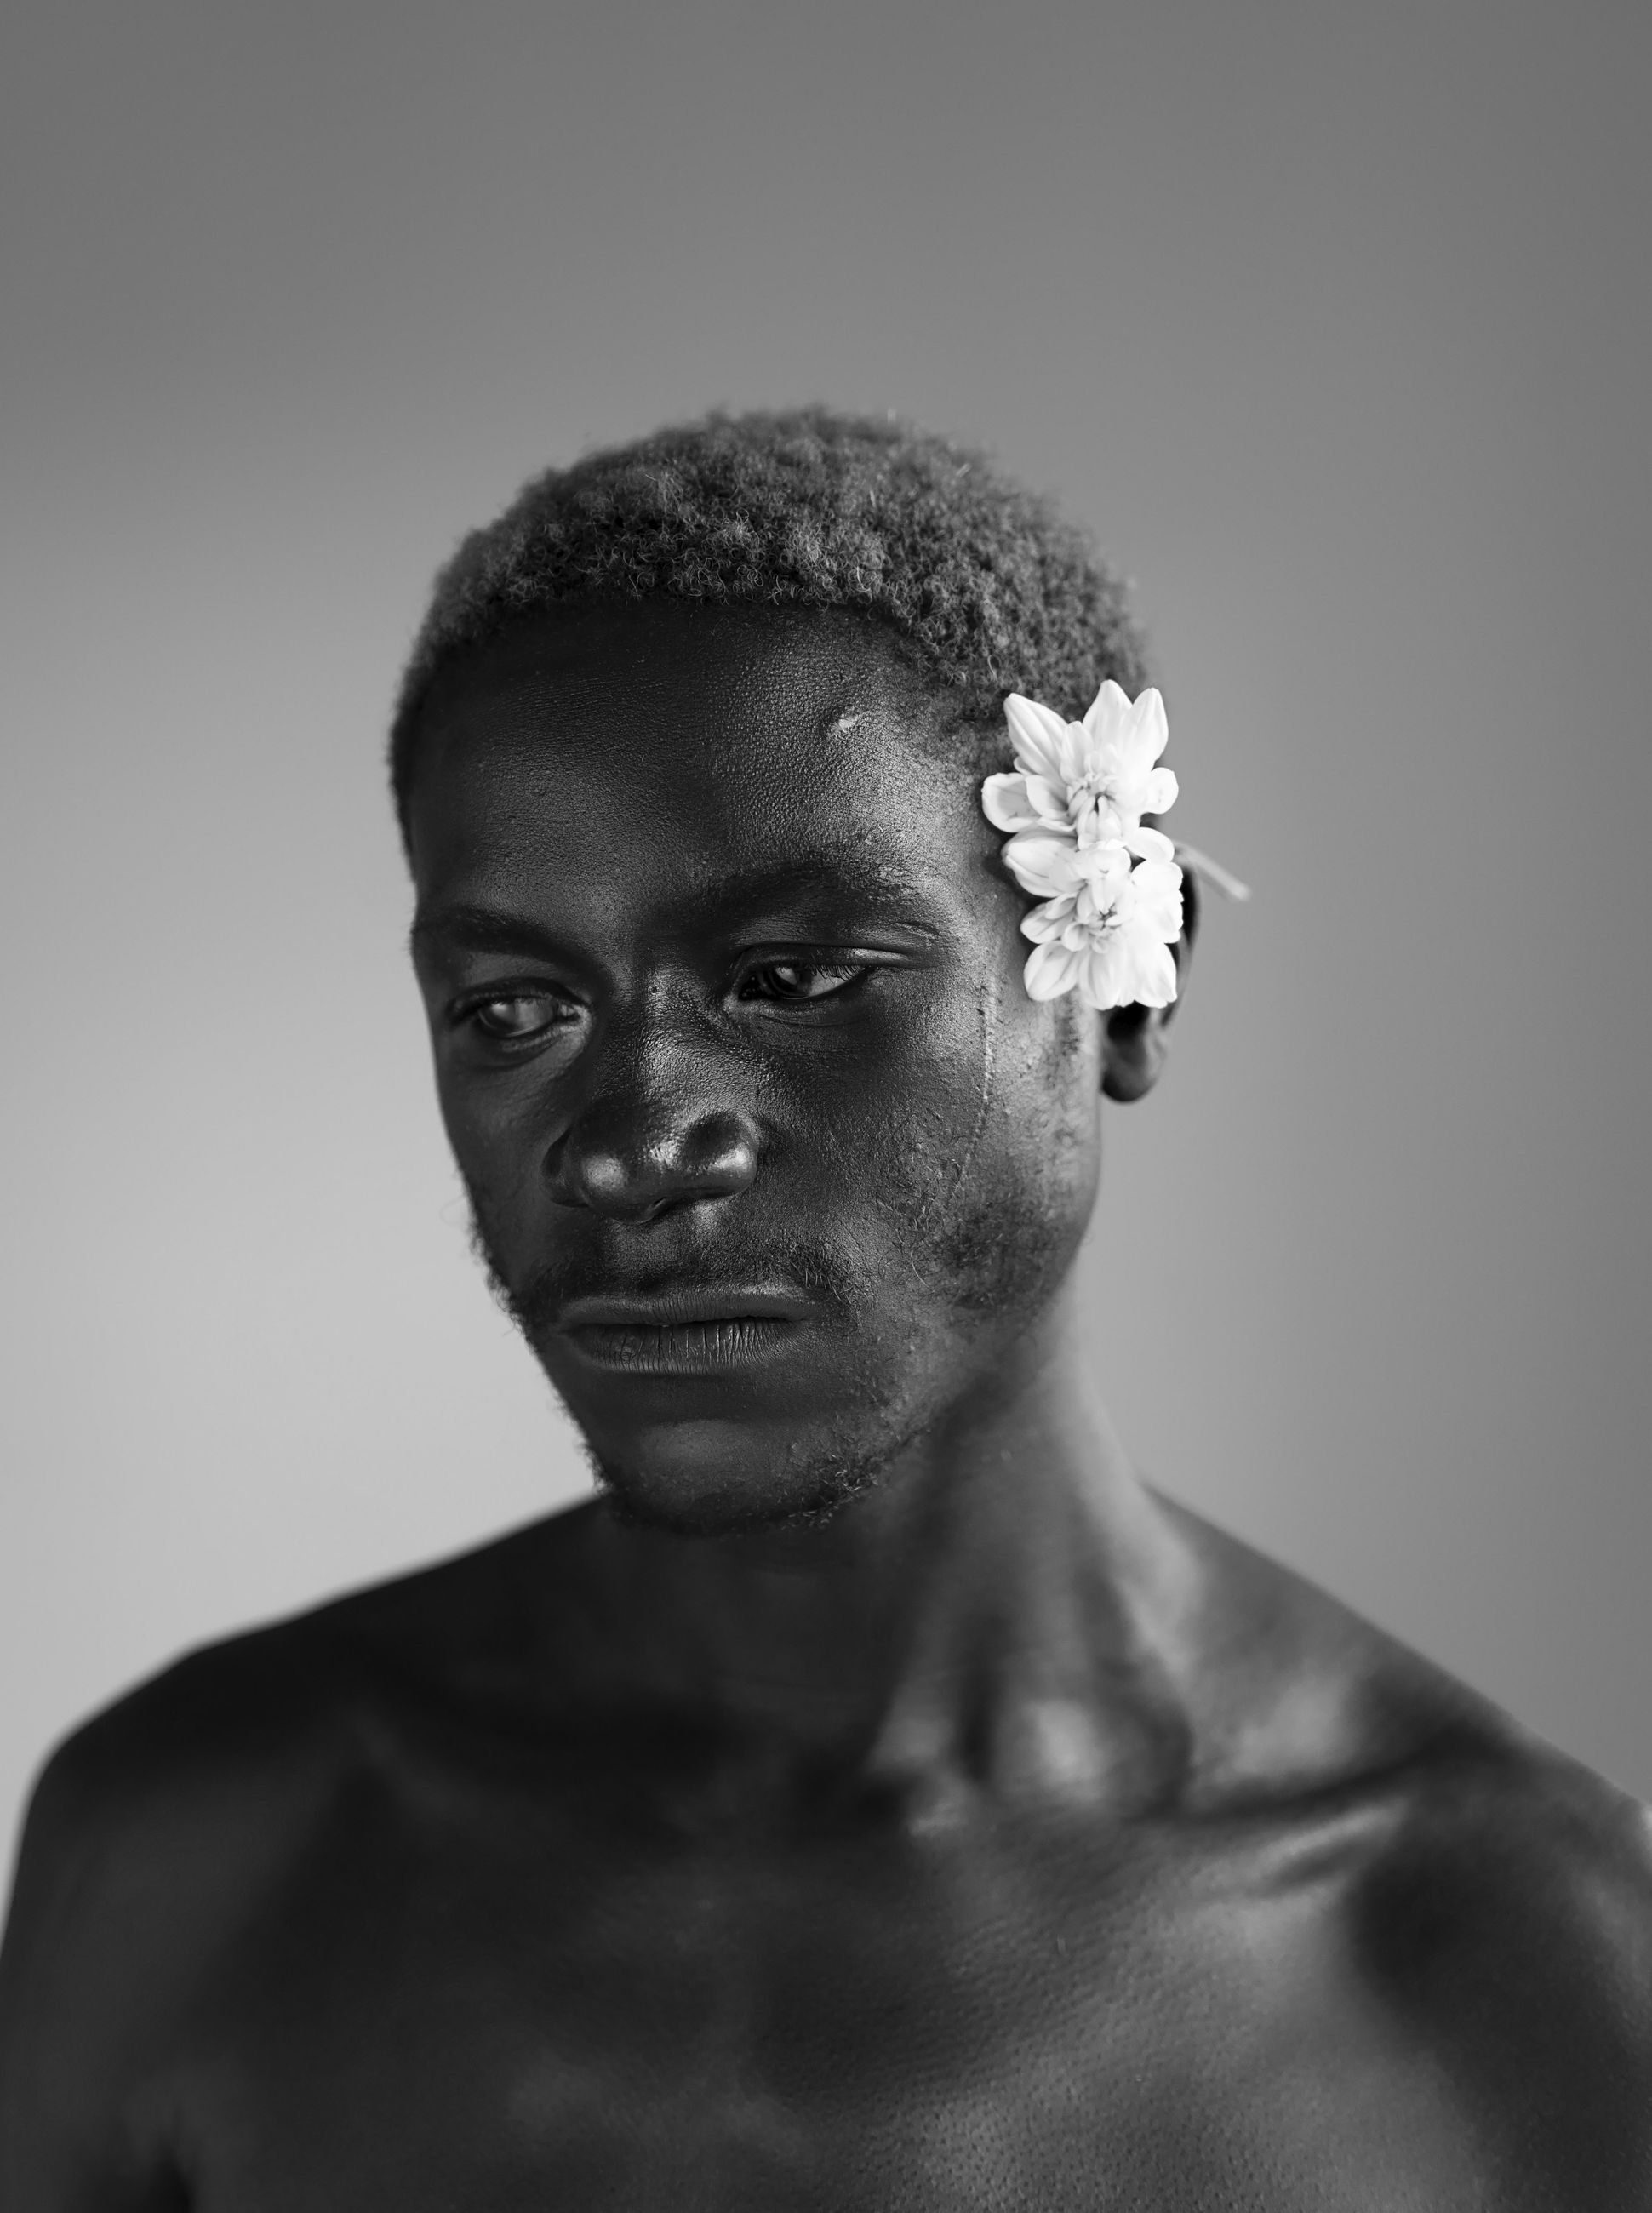 headshot, portrait, studio shot, shirtless, indoors, one person, gray background, front view, gray, young men, young adult, lifestyles, close-up, looking at camera, serious, white background, looking, contemplation